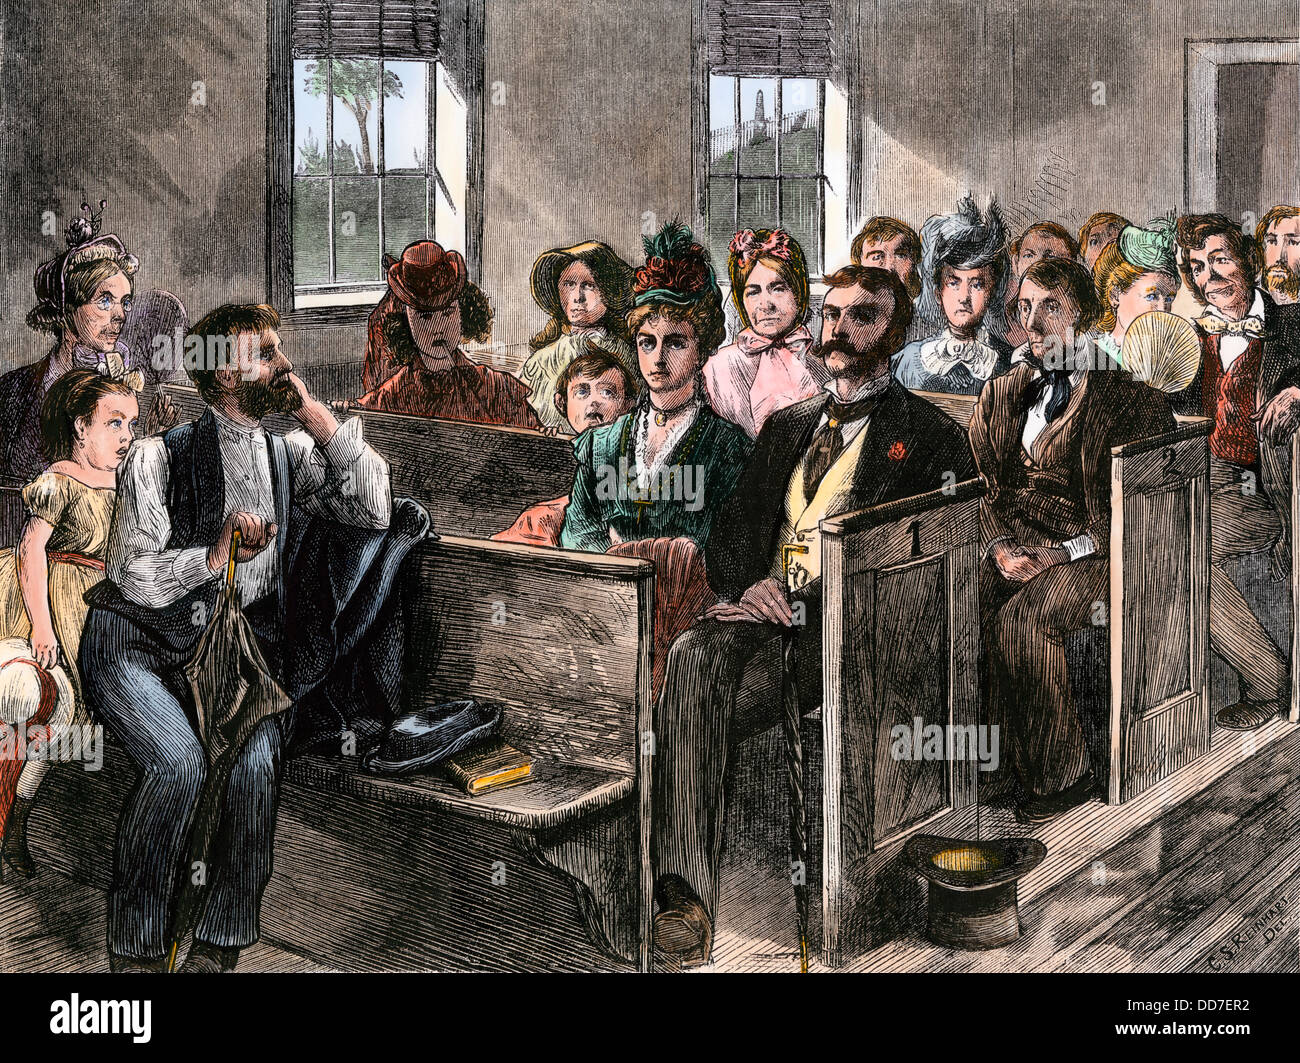 City people attending a country church, 1870s. Hand-colored woodcut - Stock Image